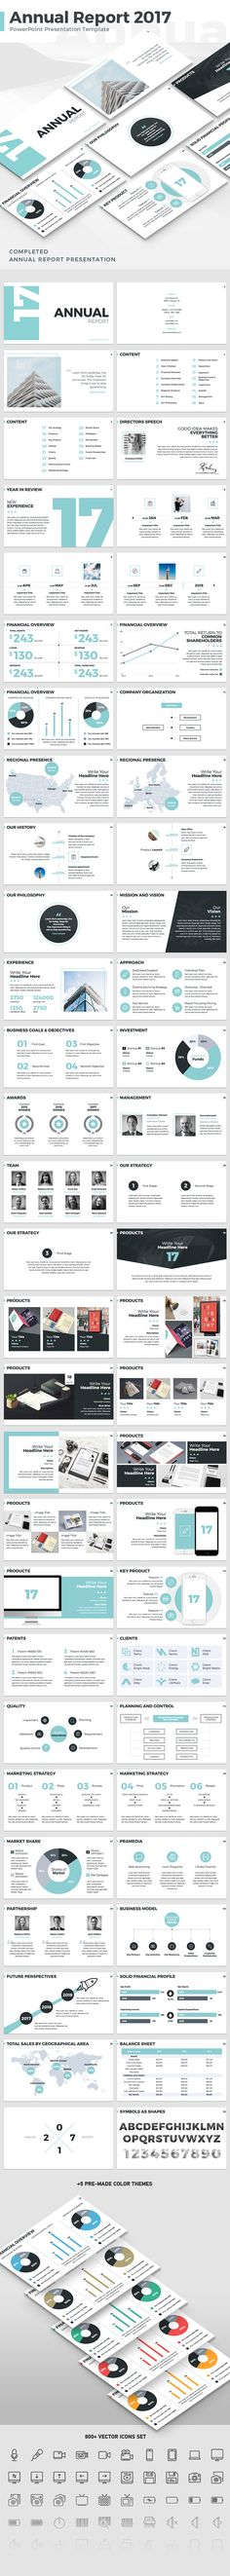 Annual Report 2017 - PowerPoint Template